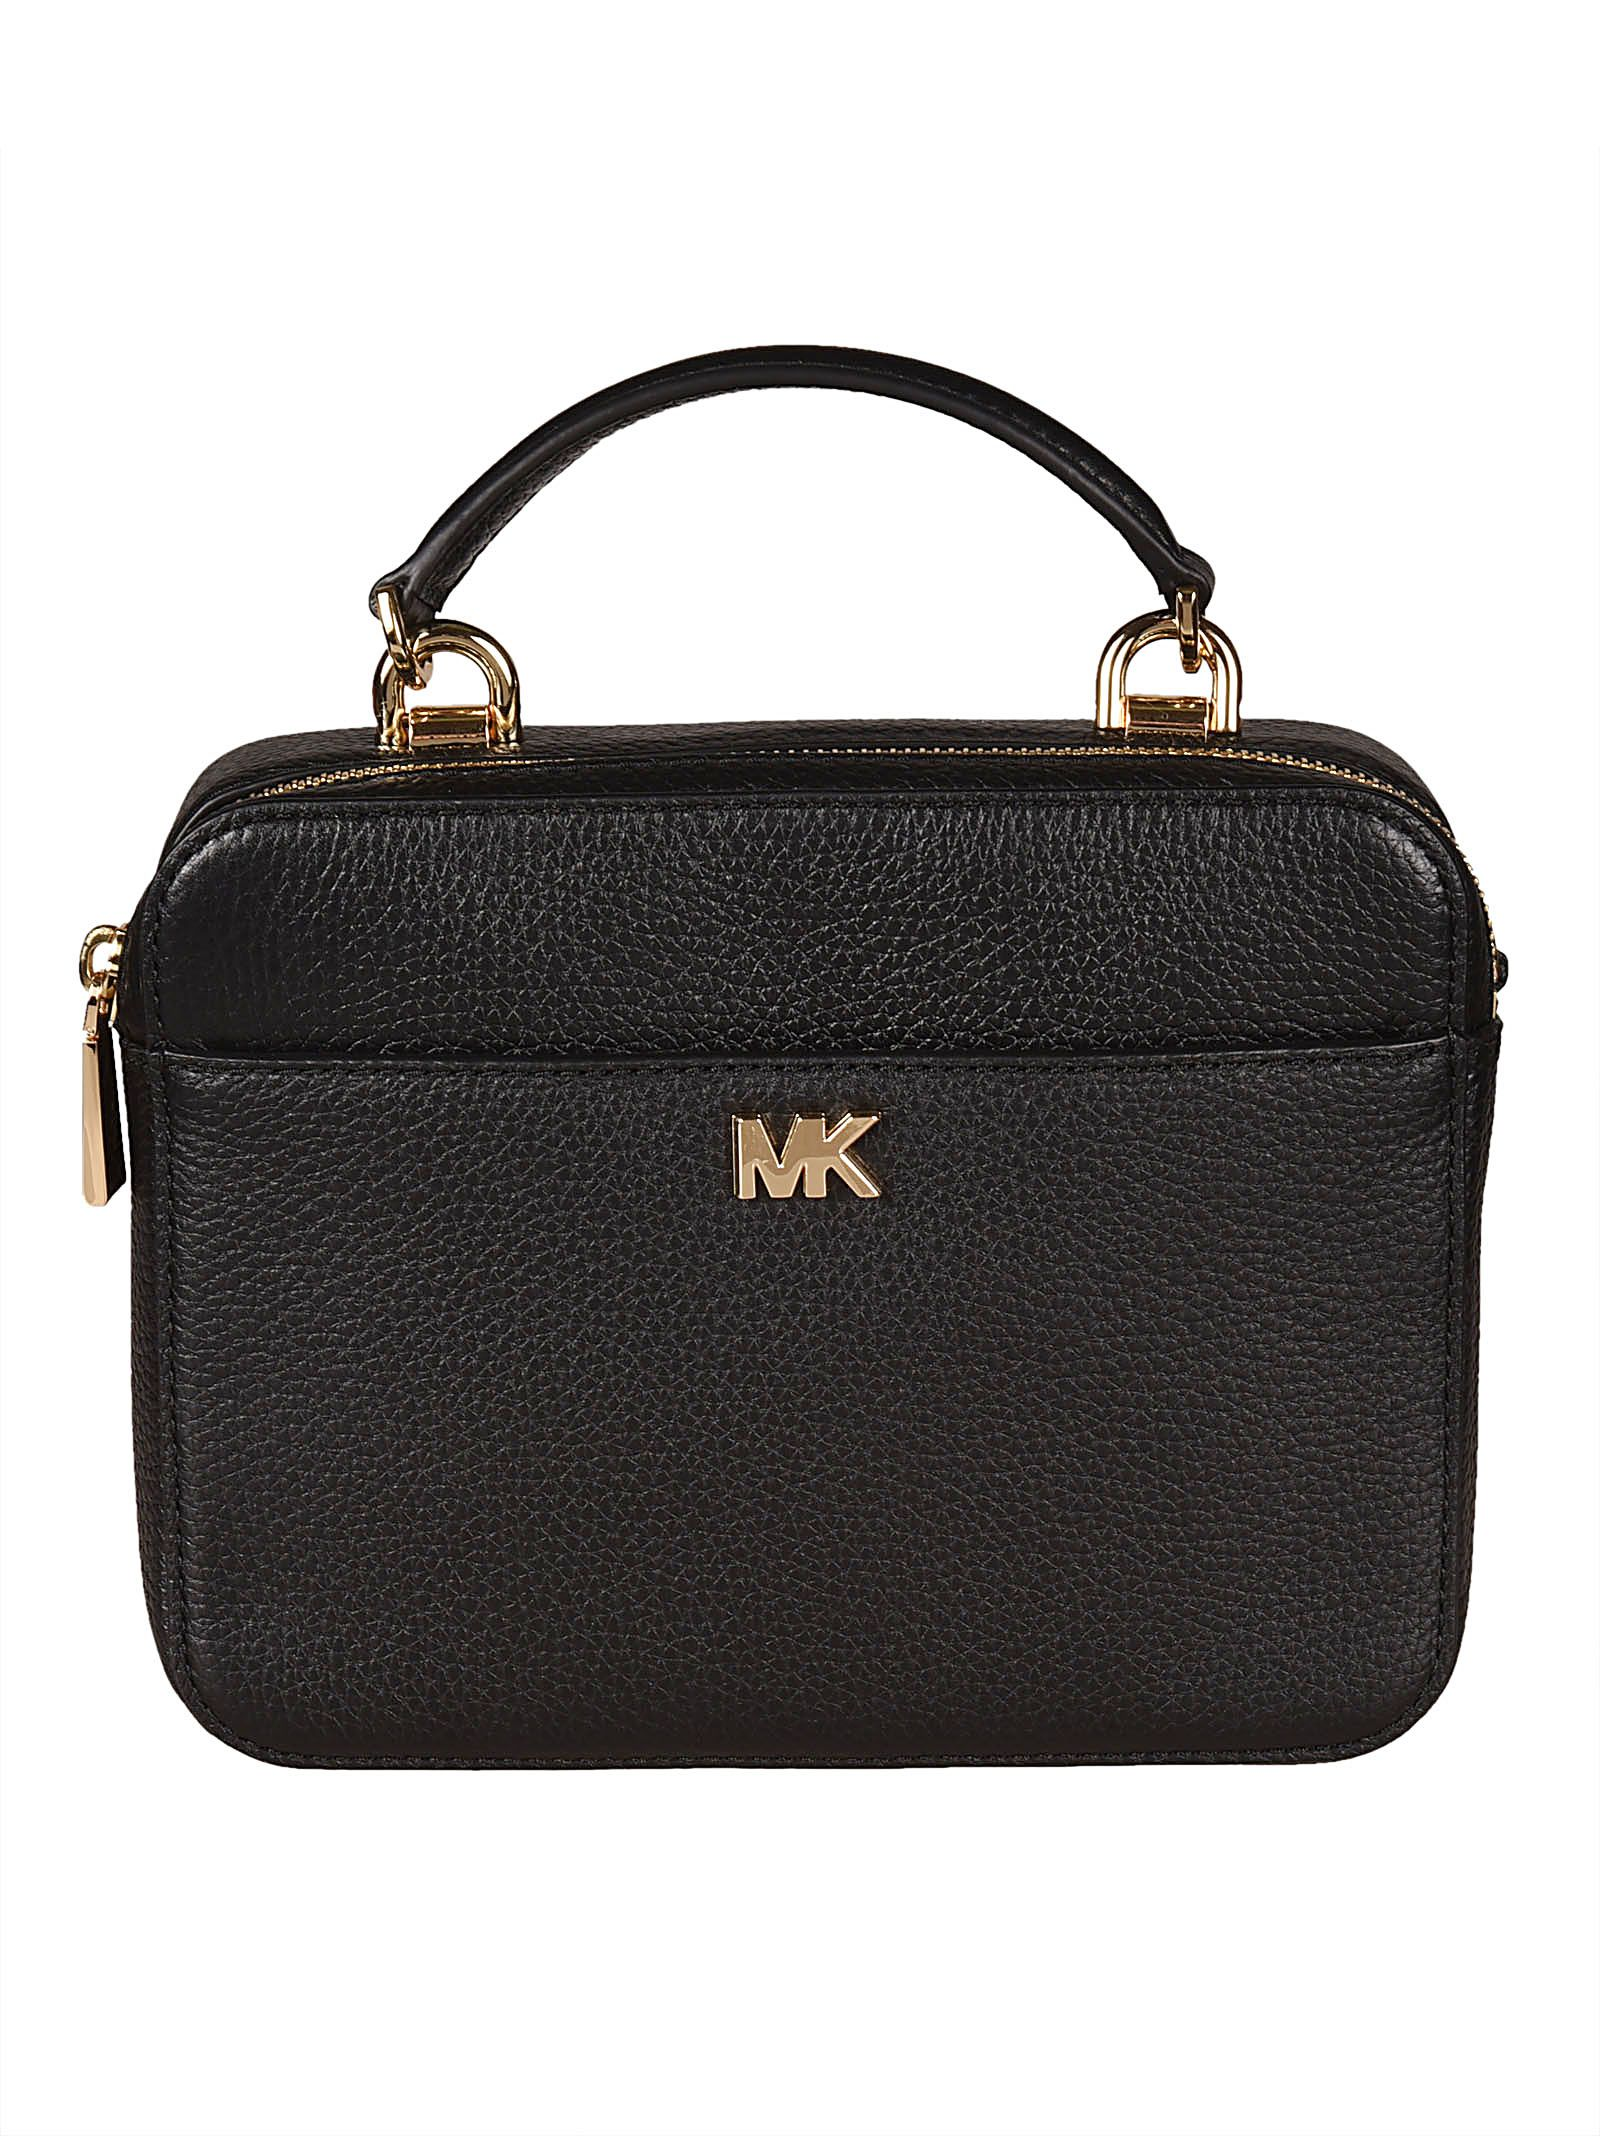 Michael Kors Guitar Strap Shoulder Bag